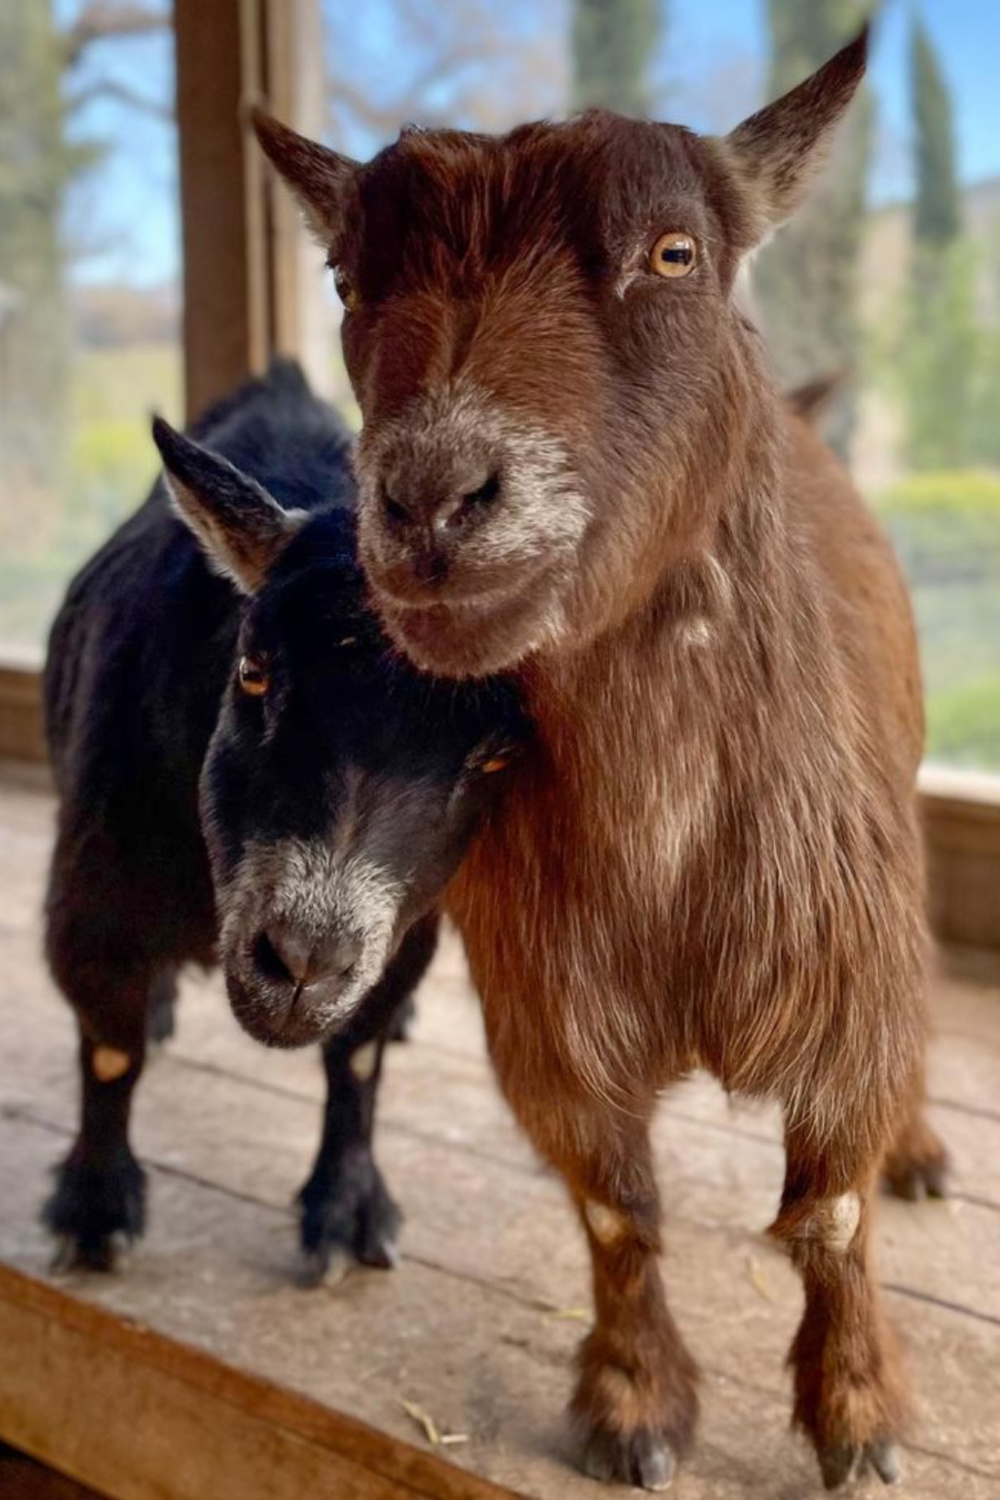 Precious Pygmy goats Thelma and Dot at Patina Farm in Ojai, California - Giannetti Home (photo by Leila Giannetti). #pygmygoats #patinafarm #goats #goatfriends